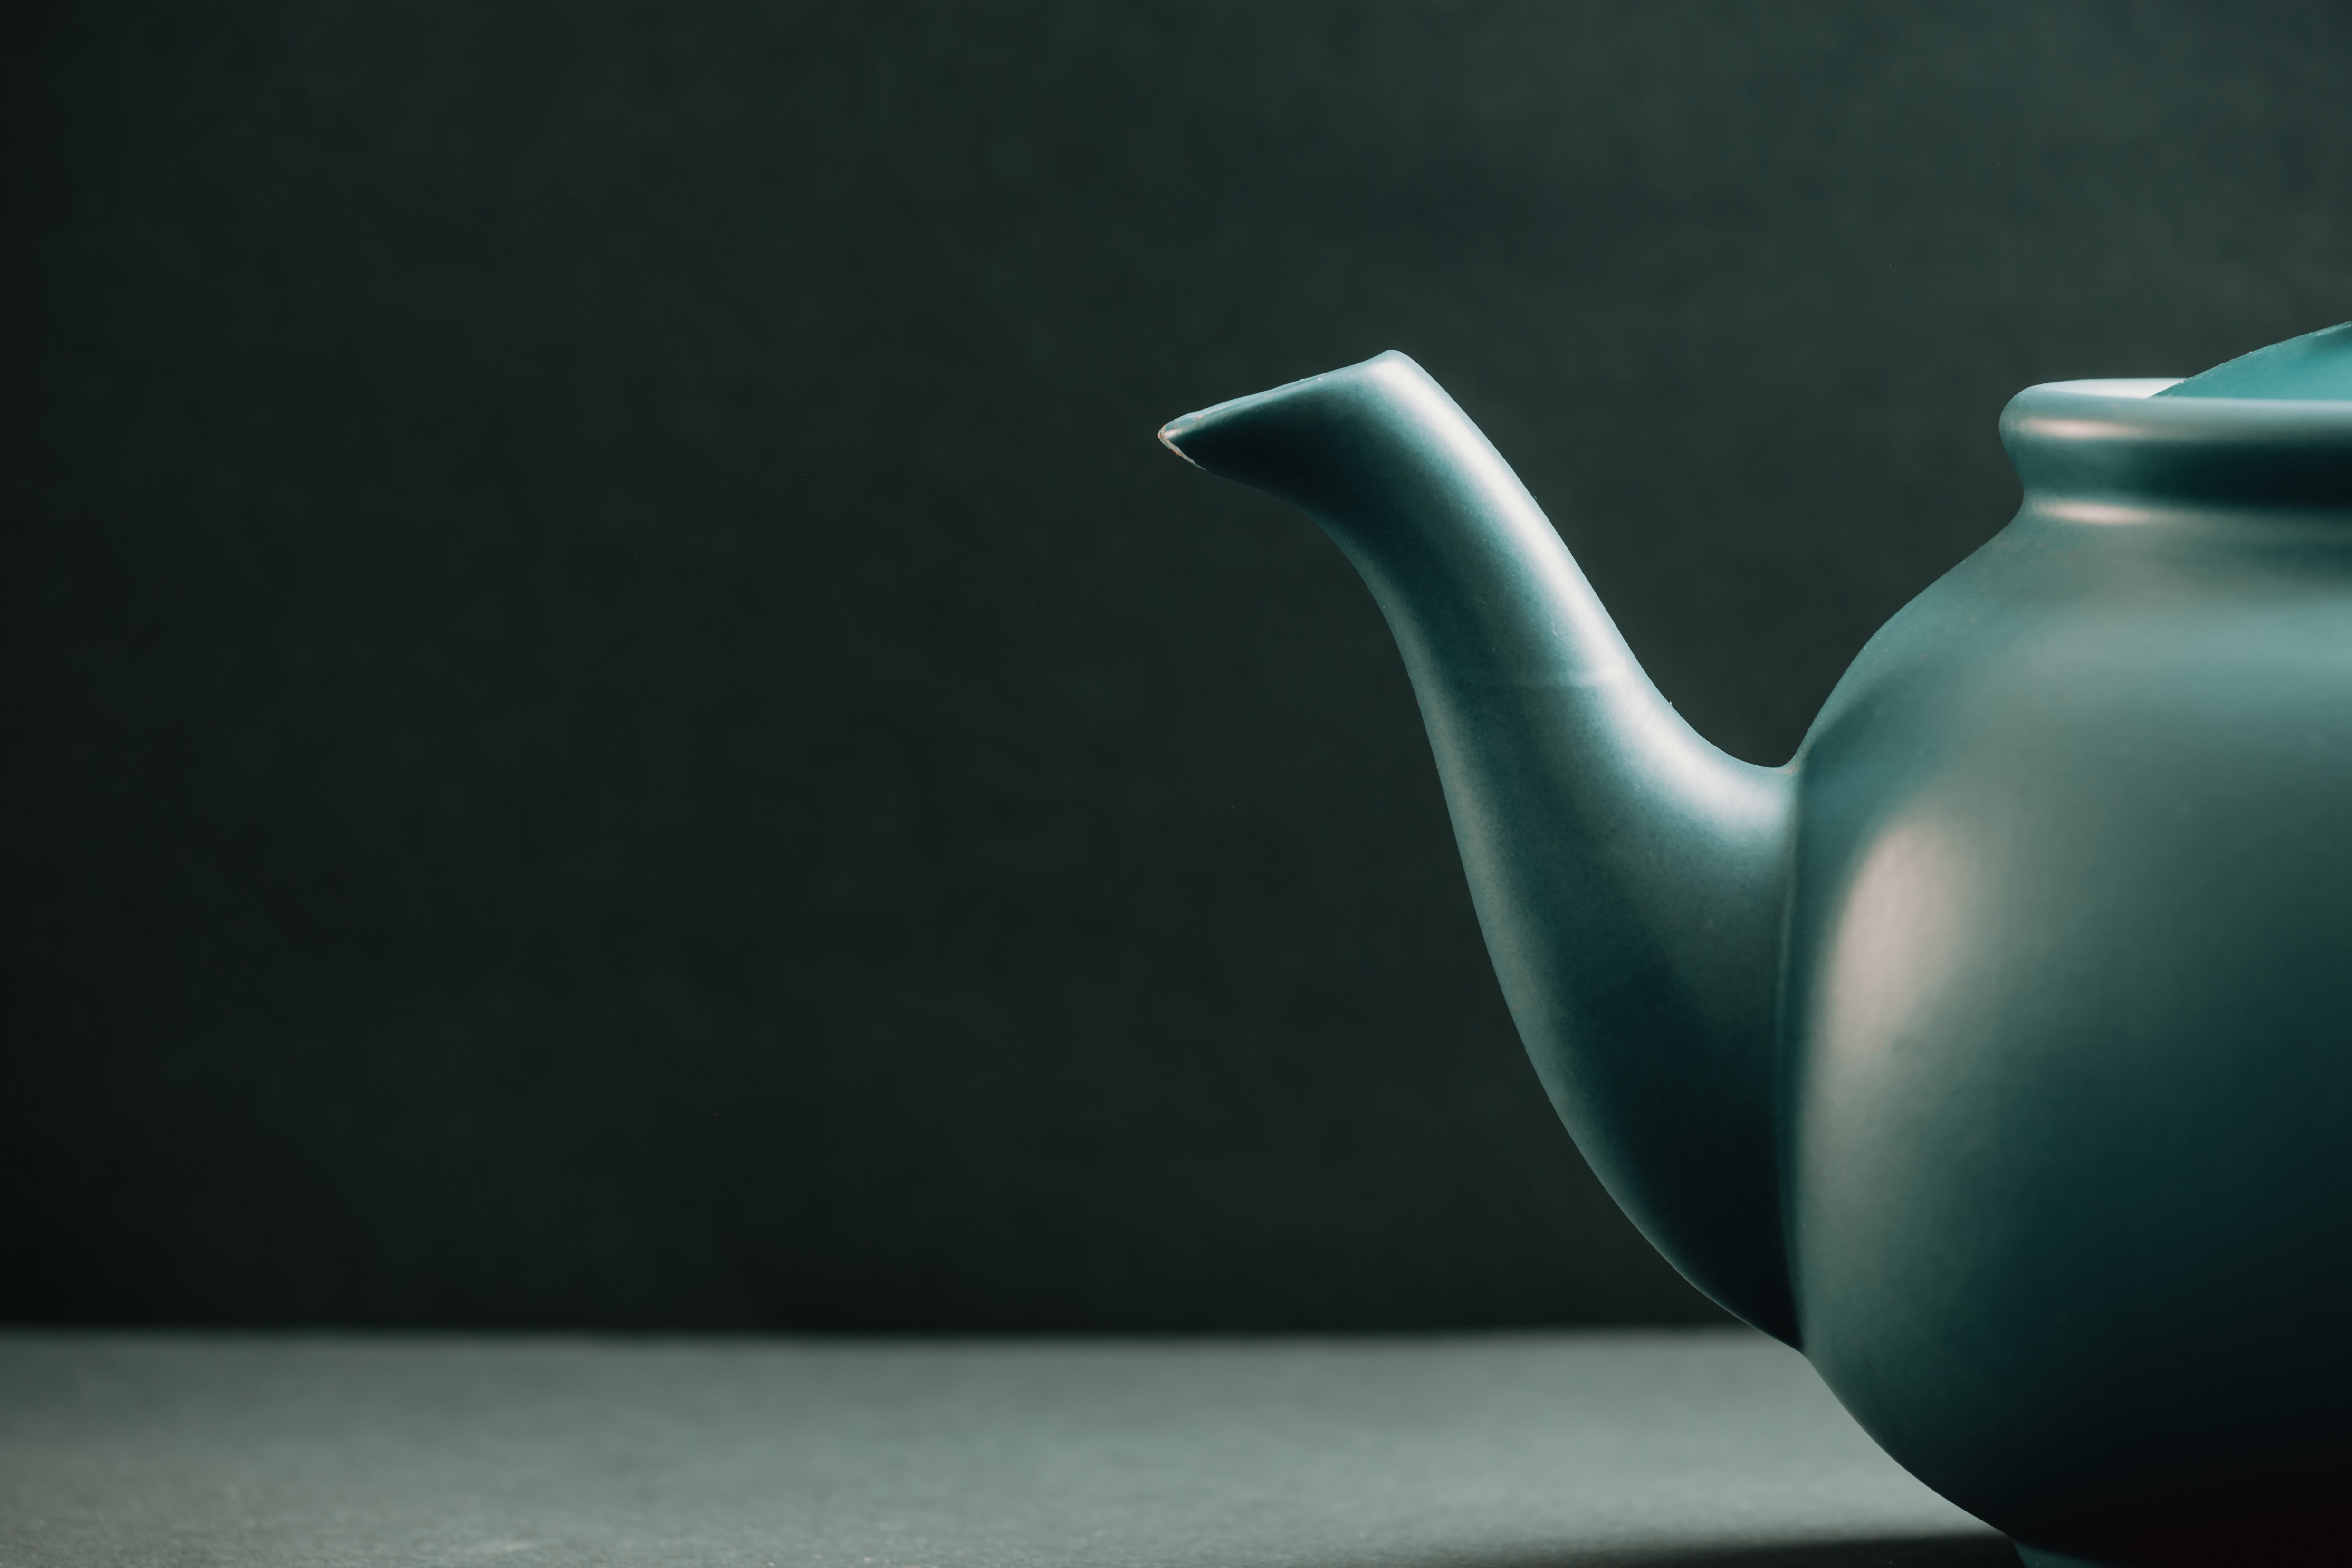 Teapot showing from the right corner